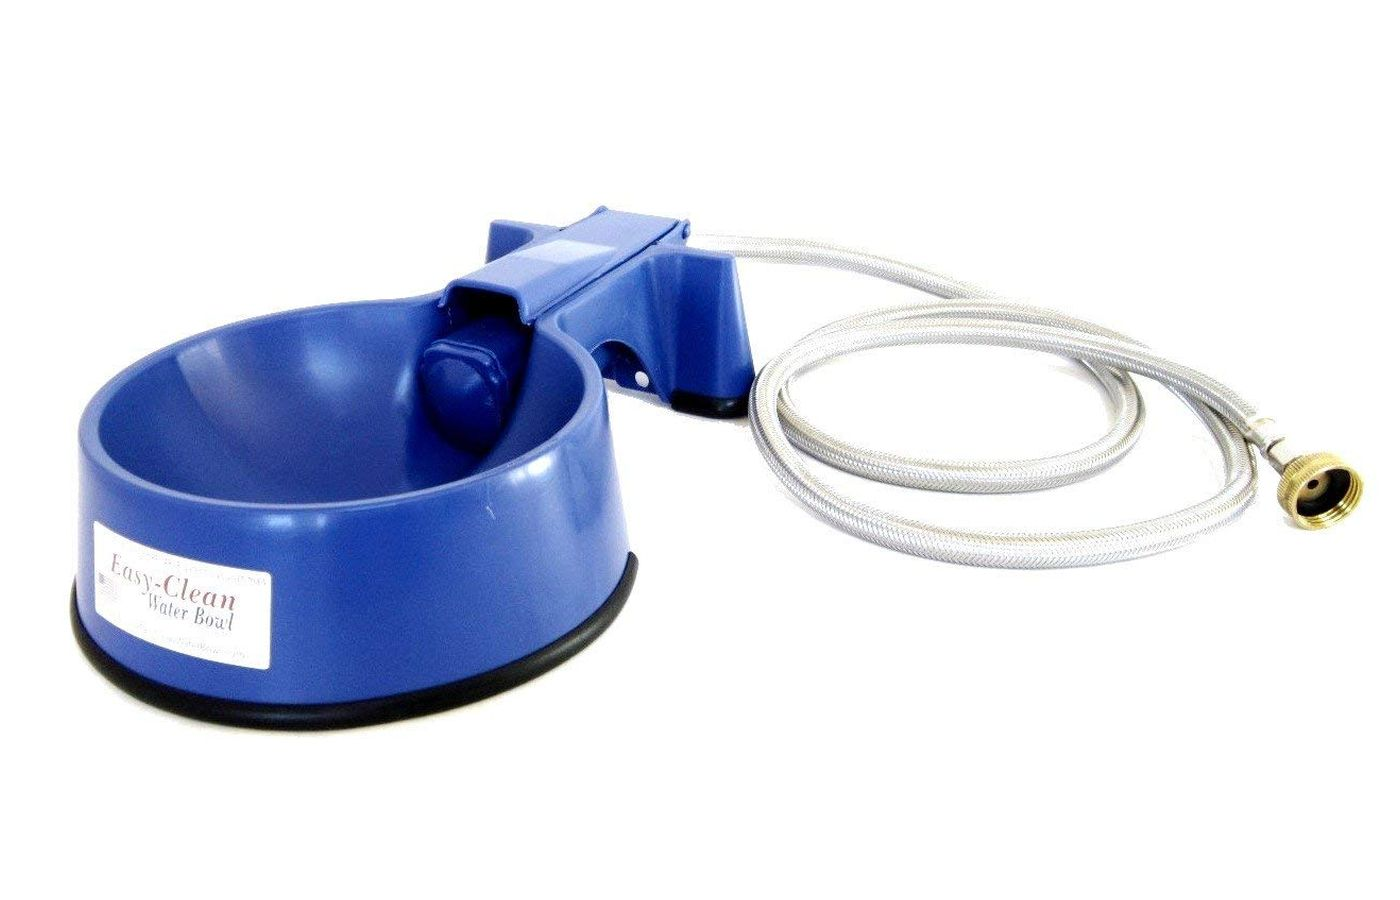 The Easy-Clean Water Bowl